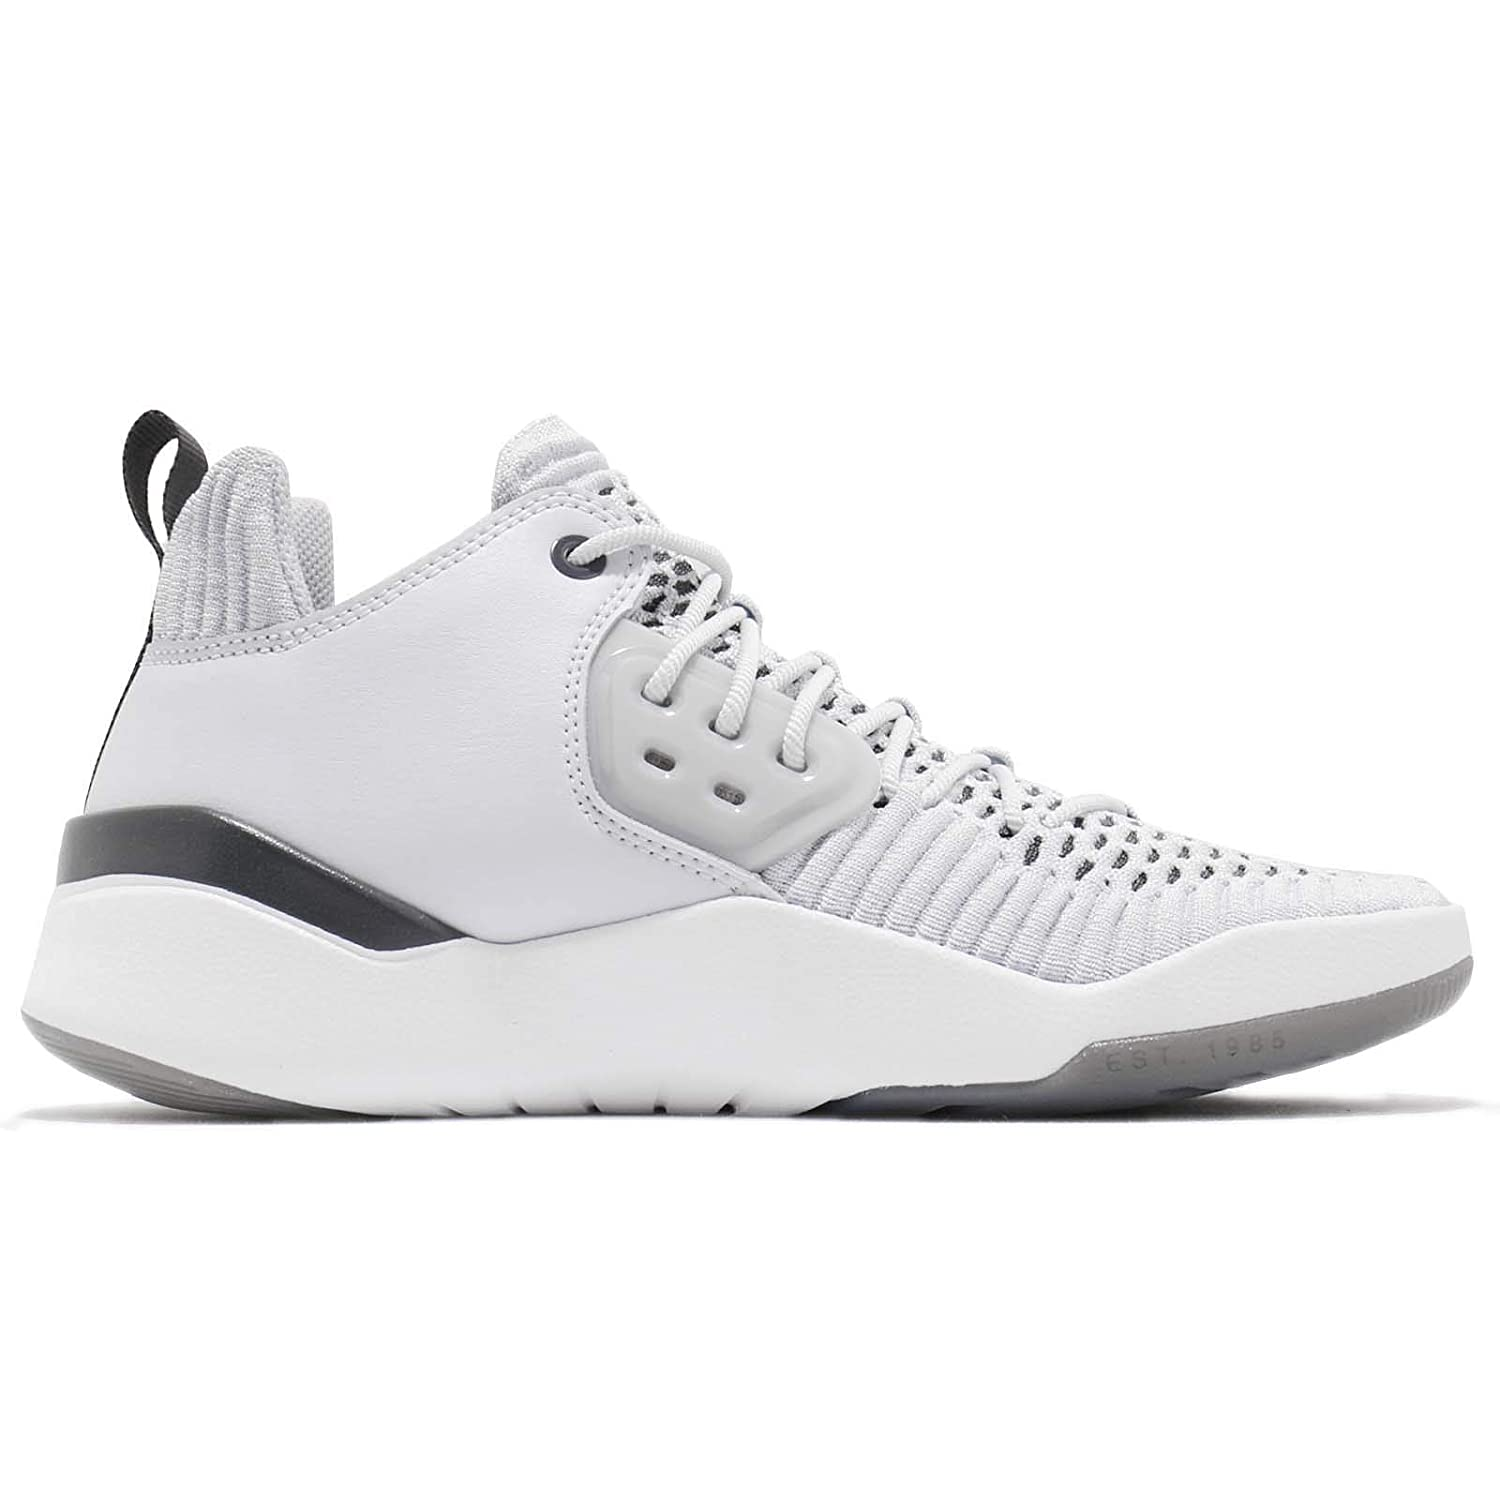 Amazon.com | Nike Air Jordan DNA LX GS Basketball Trainers AO2650 Sneakers Shoes (UK 3.5 us 4Y EU 36, Pure Platinum 002) | Running